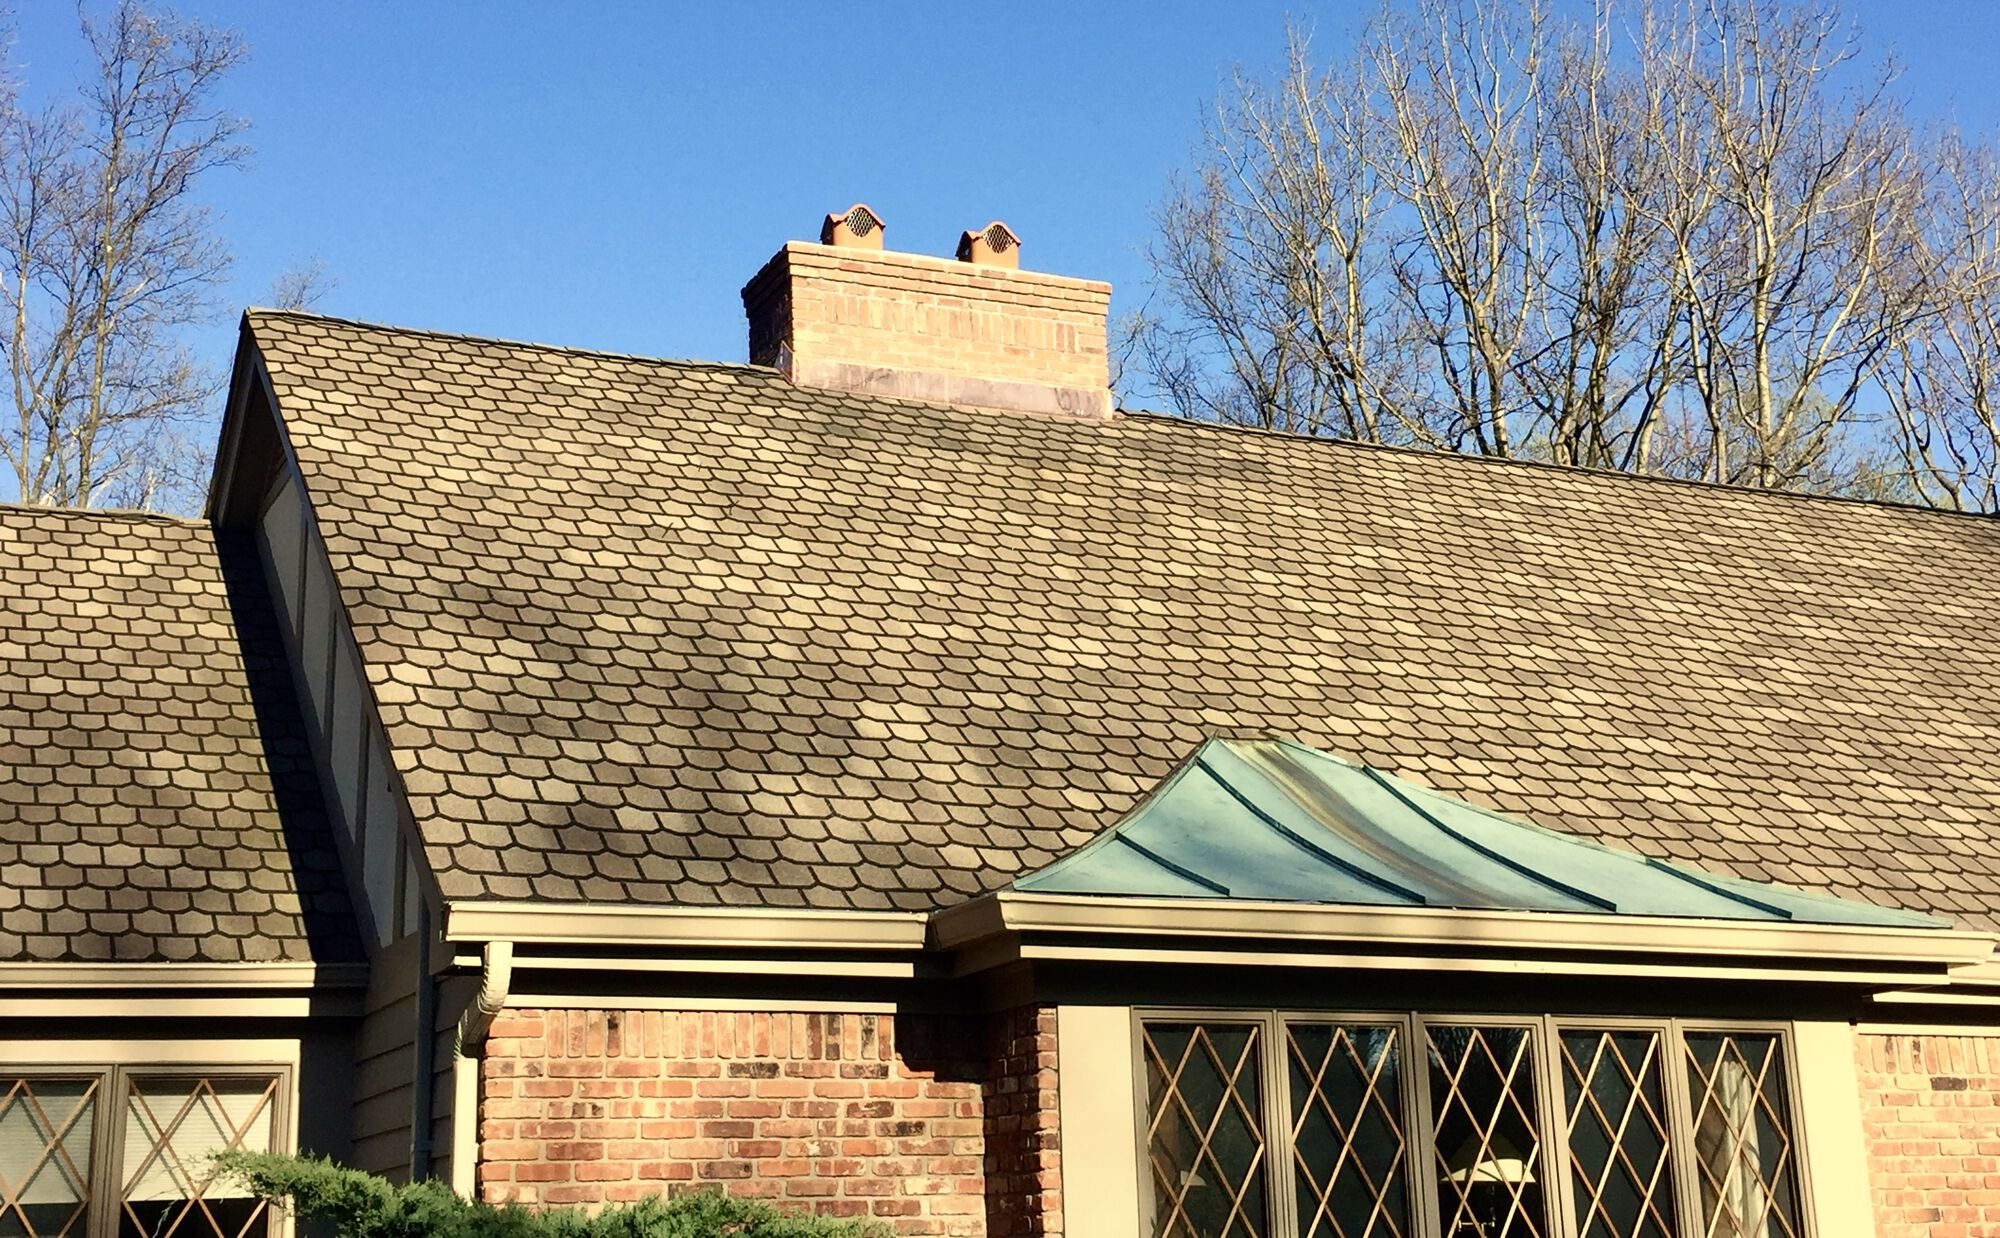 GAF Designer Lifetime Shingle Roofing with New Brick Chimney and Copper Flashing in Sussex County NJ